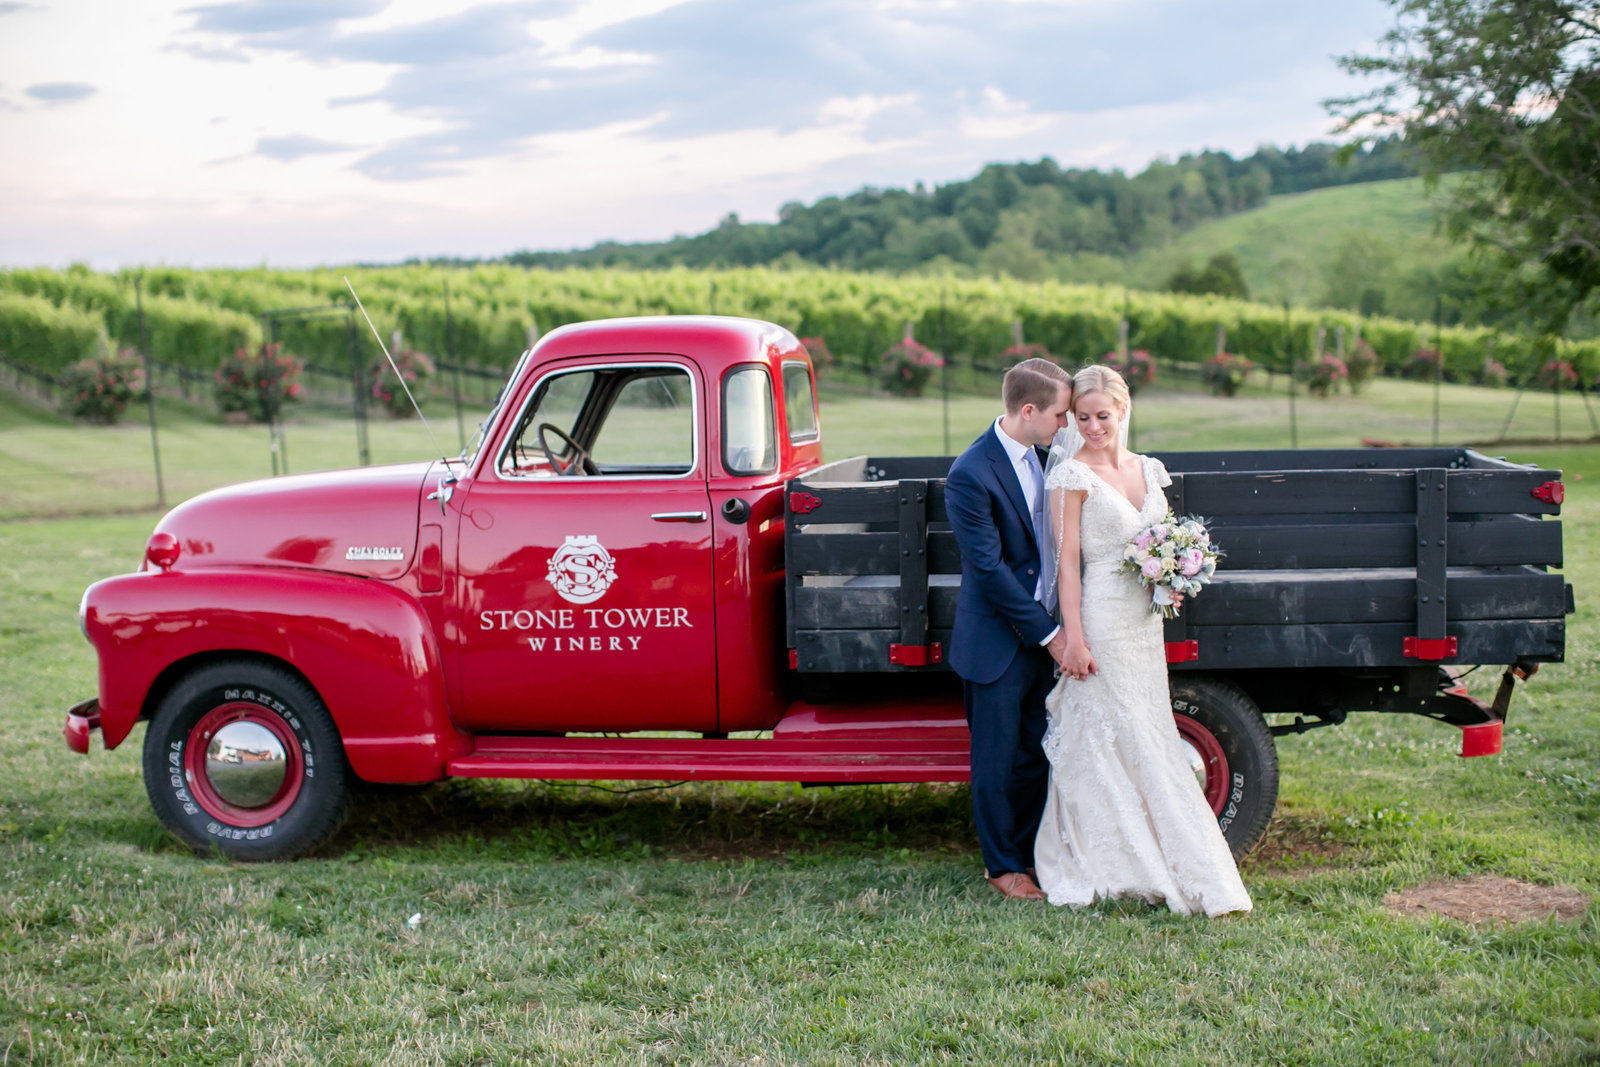 Carley Rehberg Photography - Wedding Photographer - Photo49